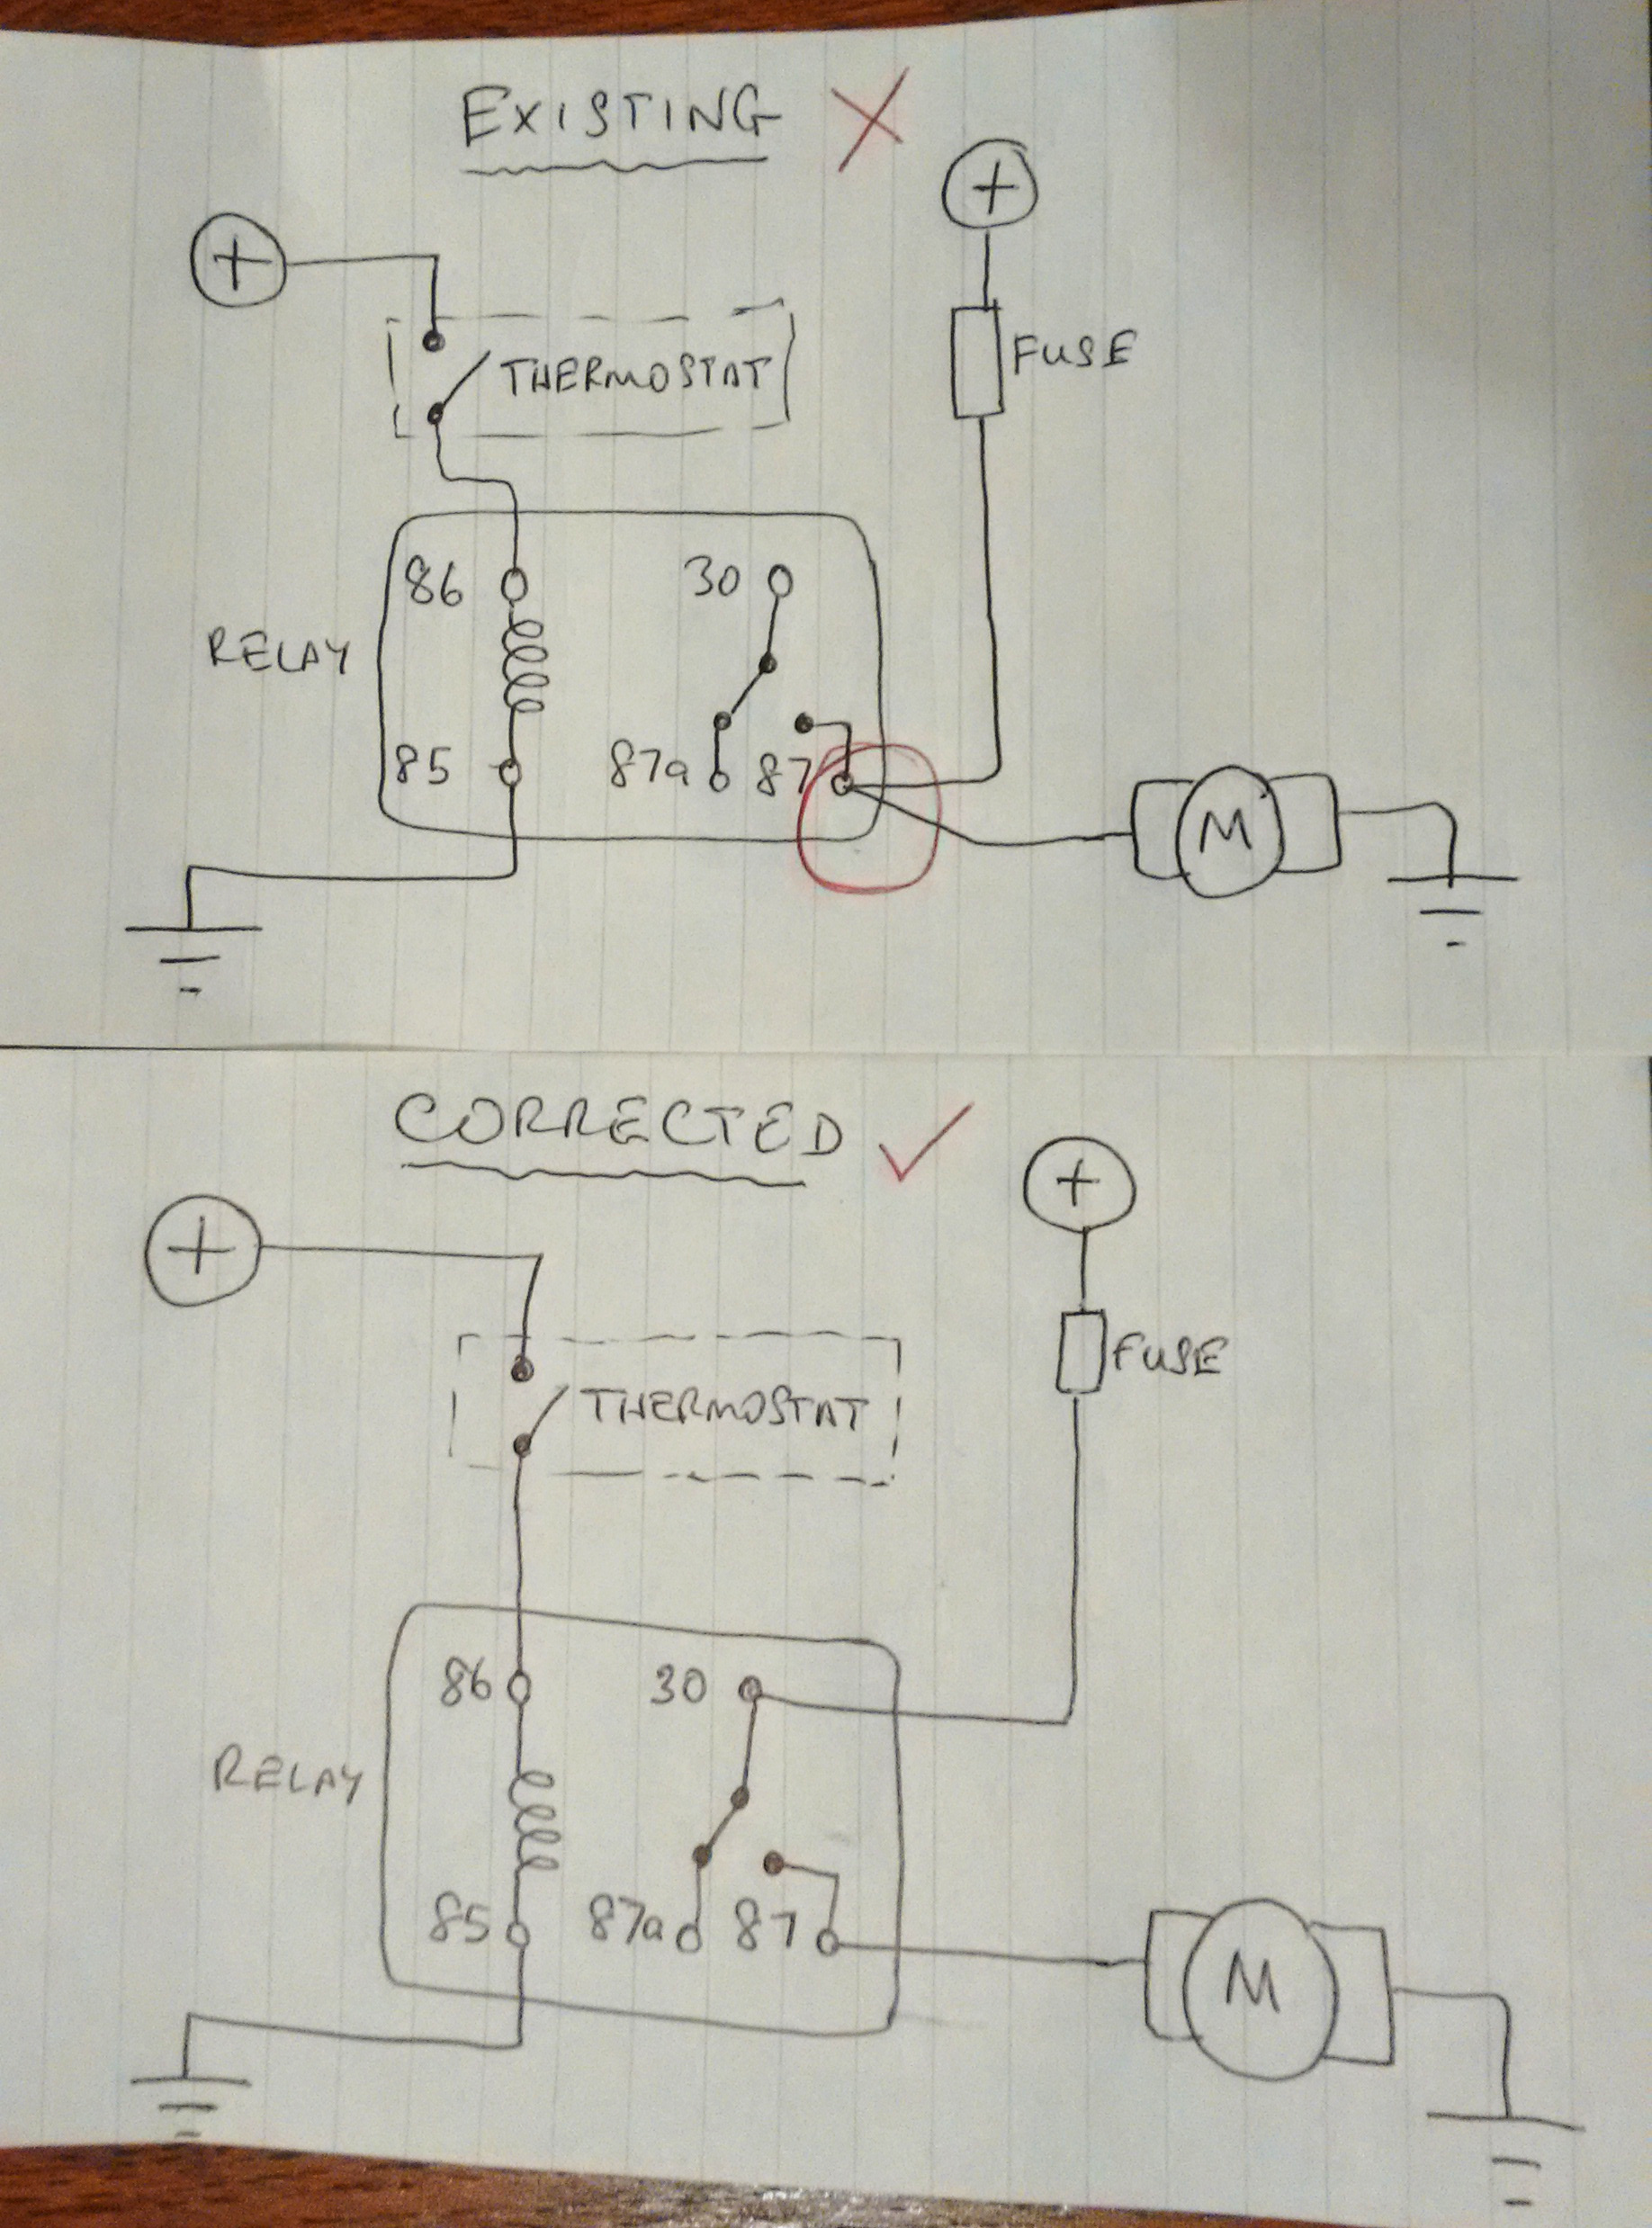 Wiring Diagram Capillary Thermostat Dimensional Drawingssc1st Land Rover Series 3 Indicator Kenlowe Fan Ramblings Nest E Placement